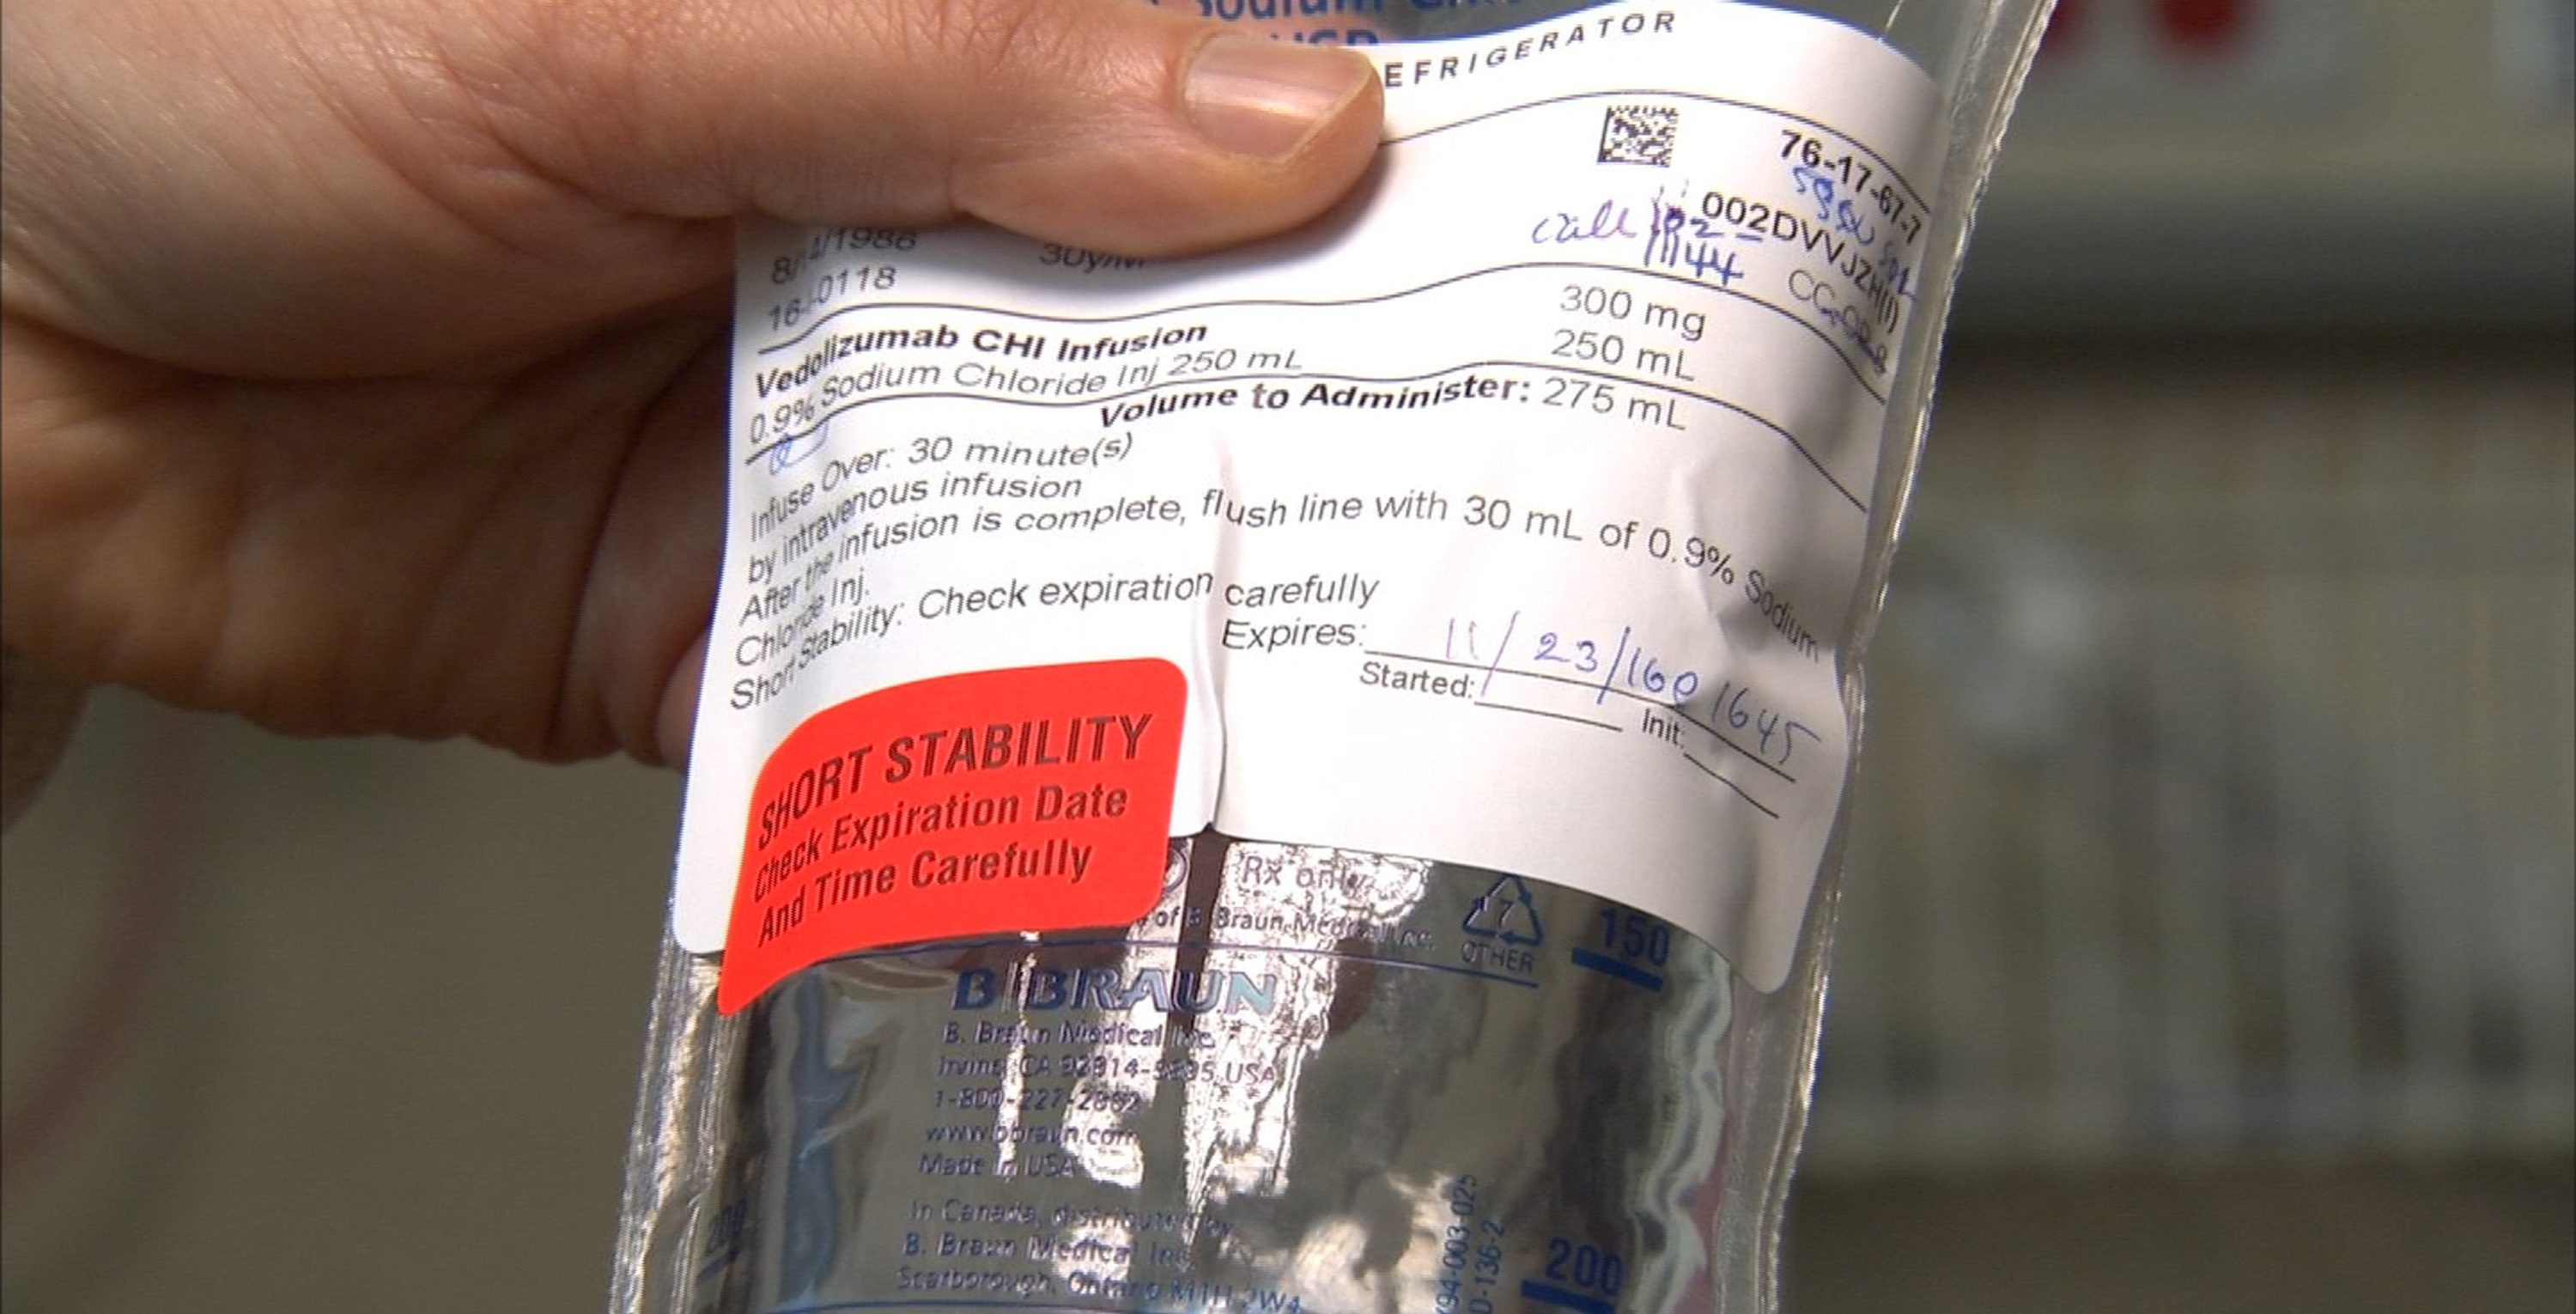 An IV bag of an HIV medication being tested at the National Institutes of Health is pictured in Bethesda.